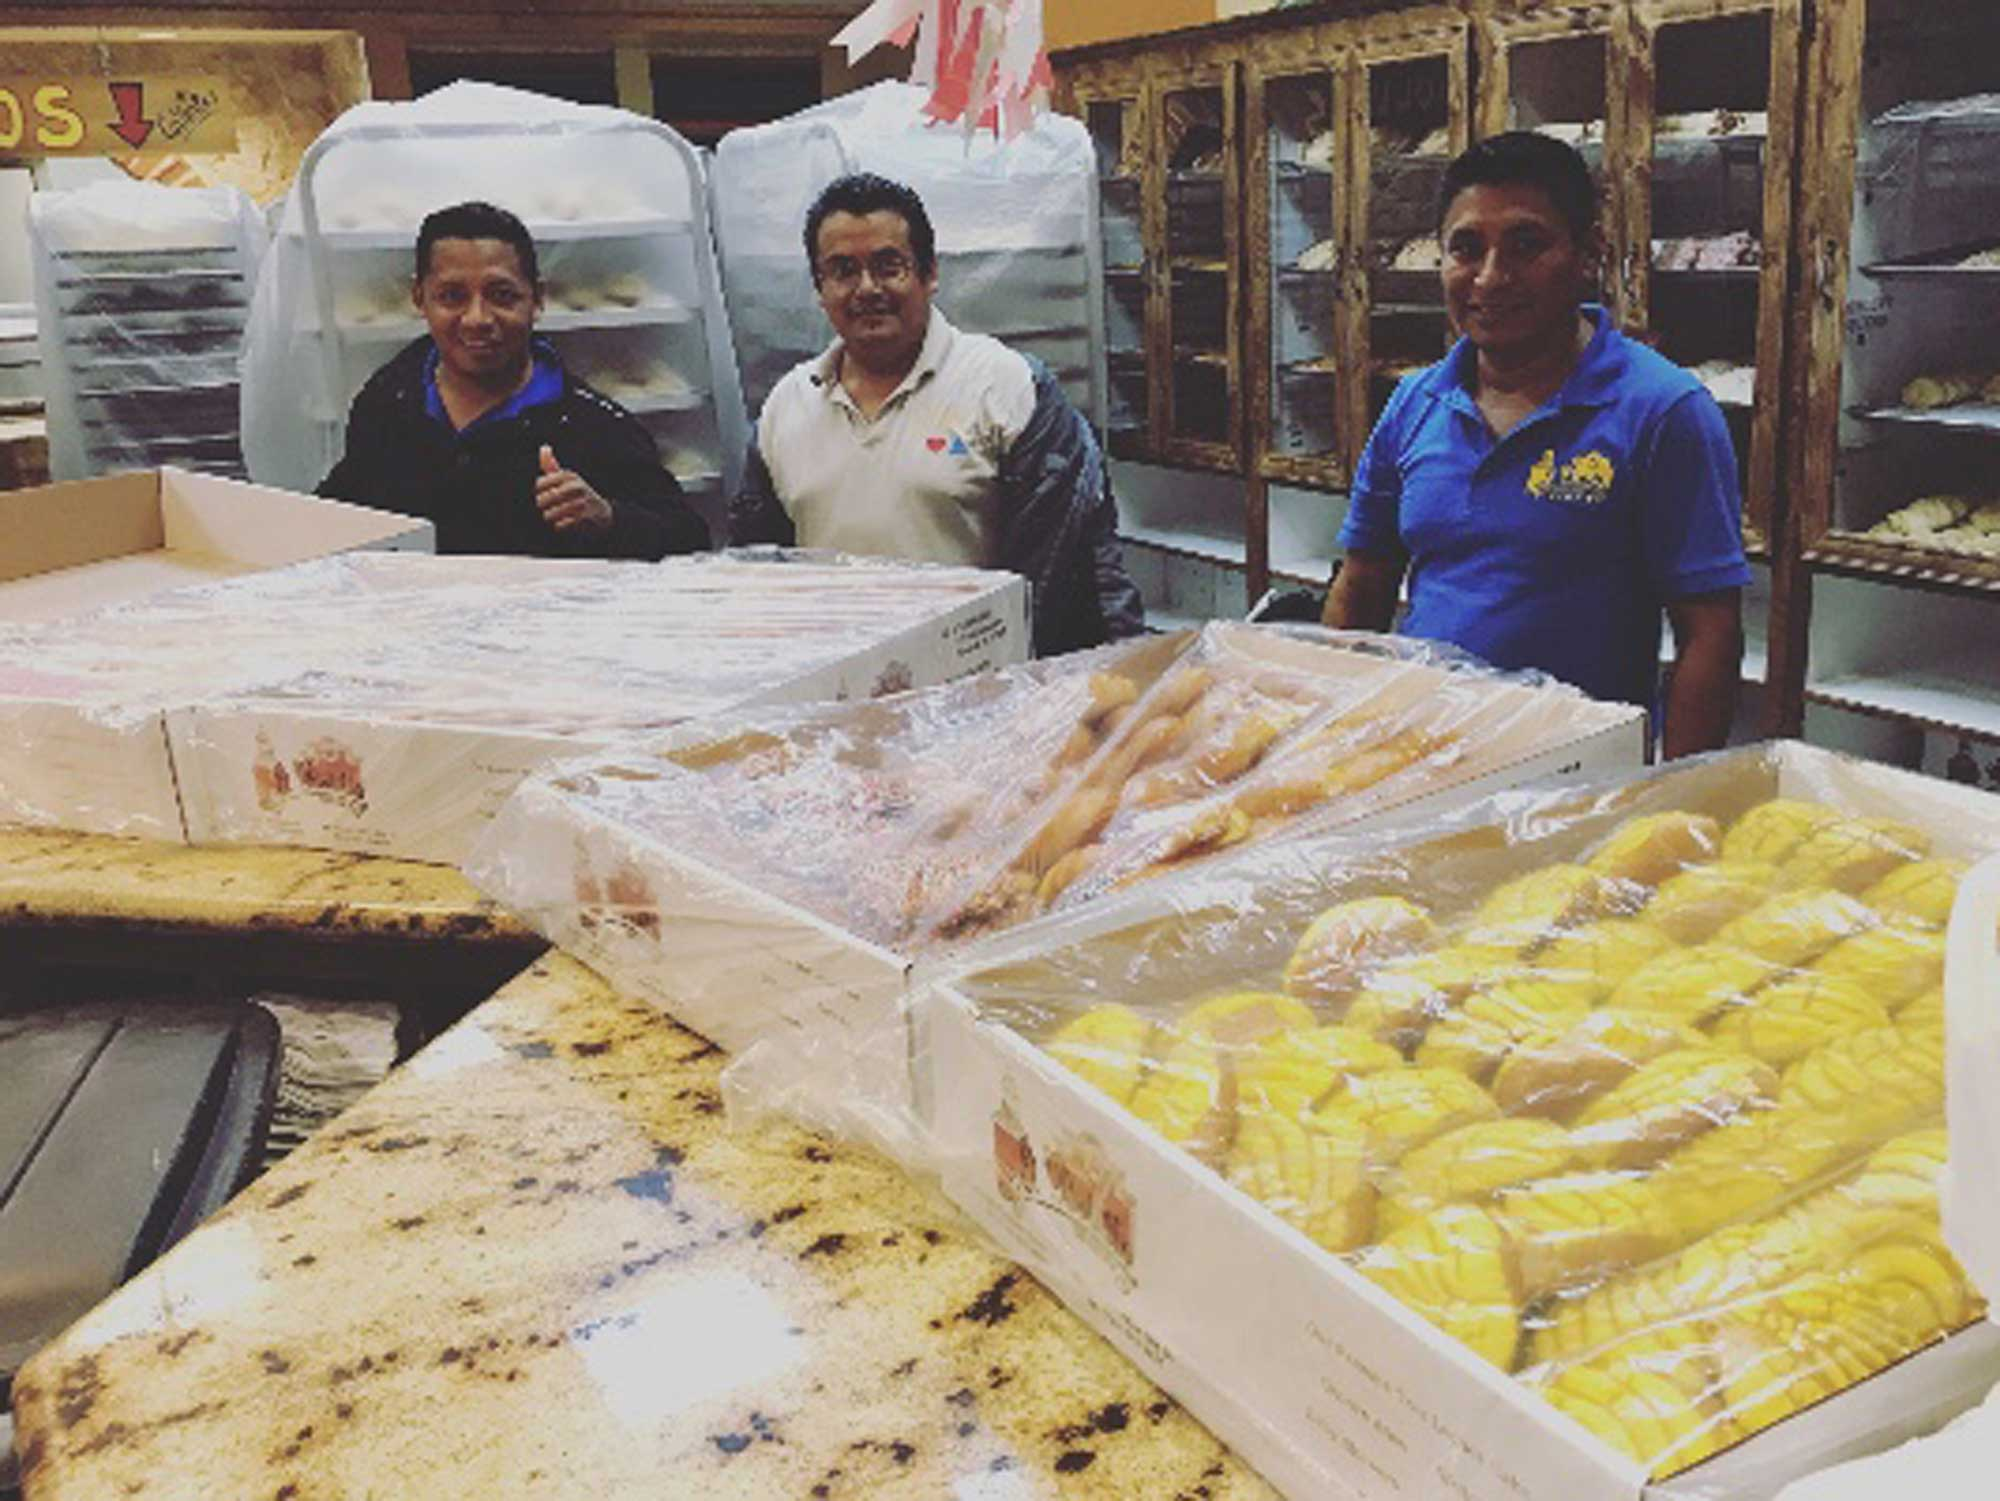 Trapped By Hurricane Harvey, These Bakers Made Thousands of Pan Dulce Loaves For Those in Need